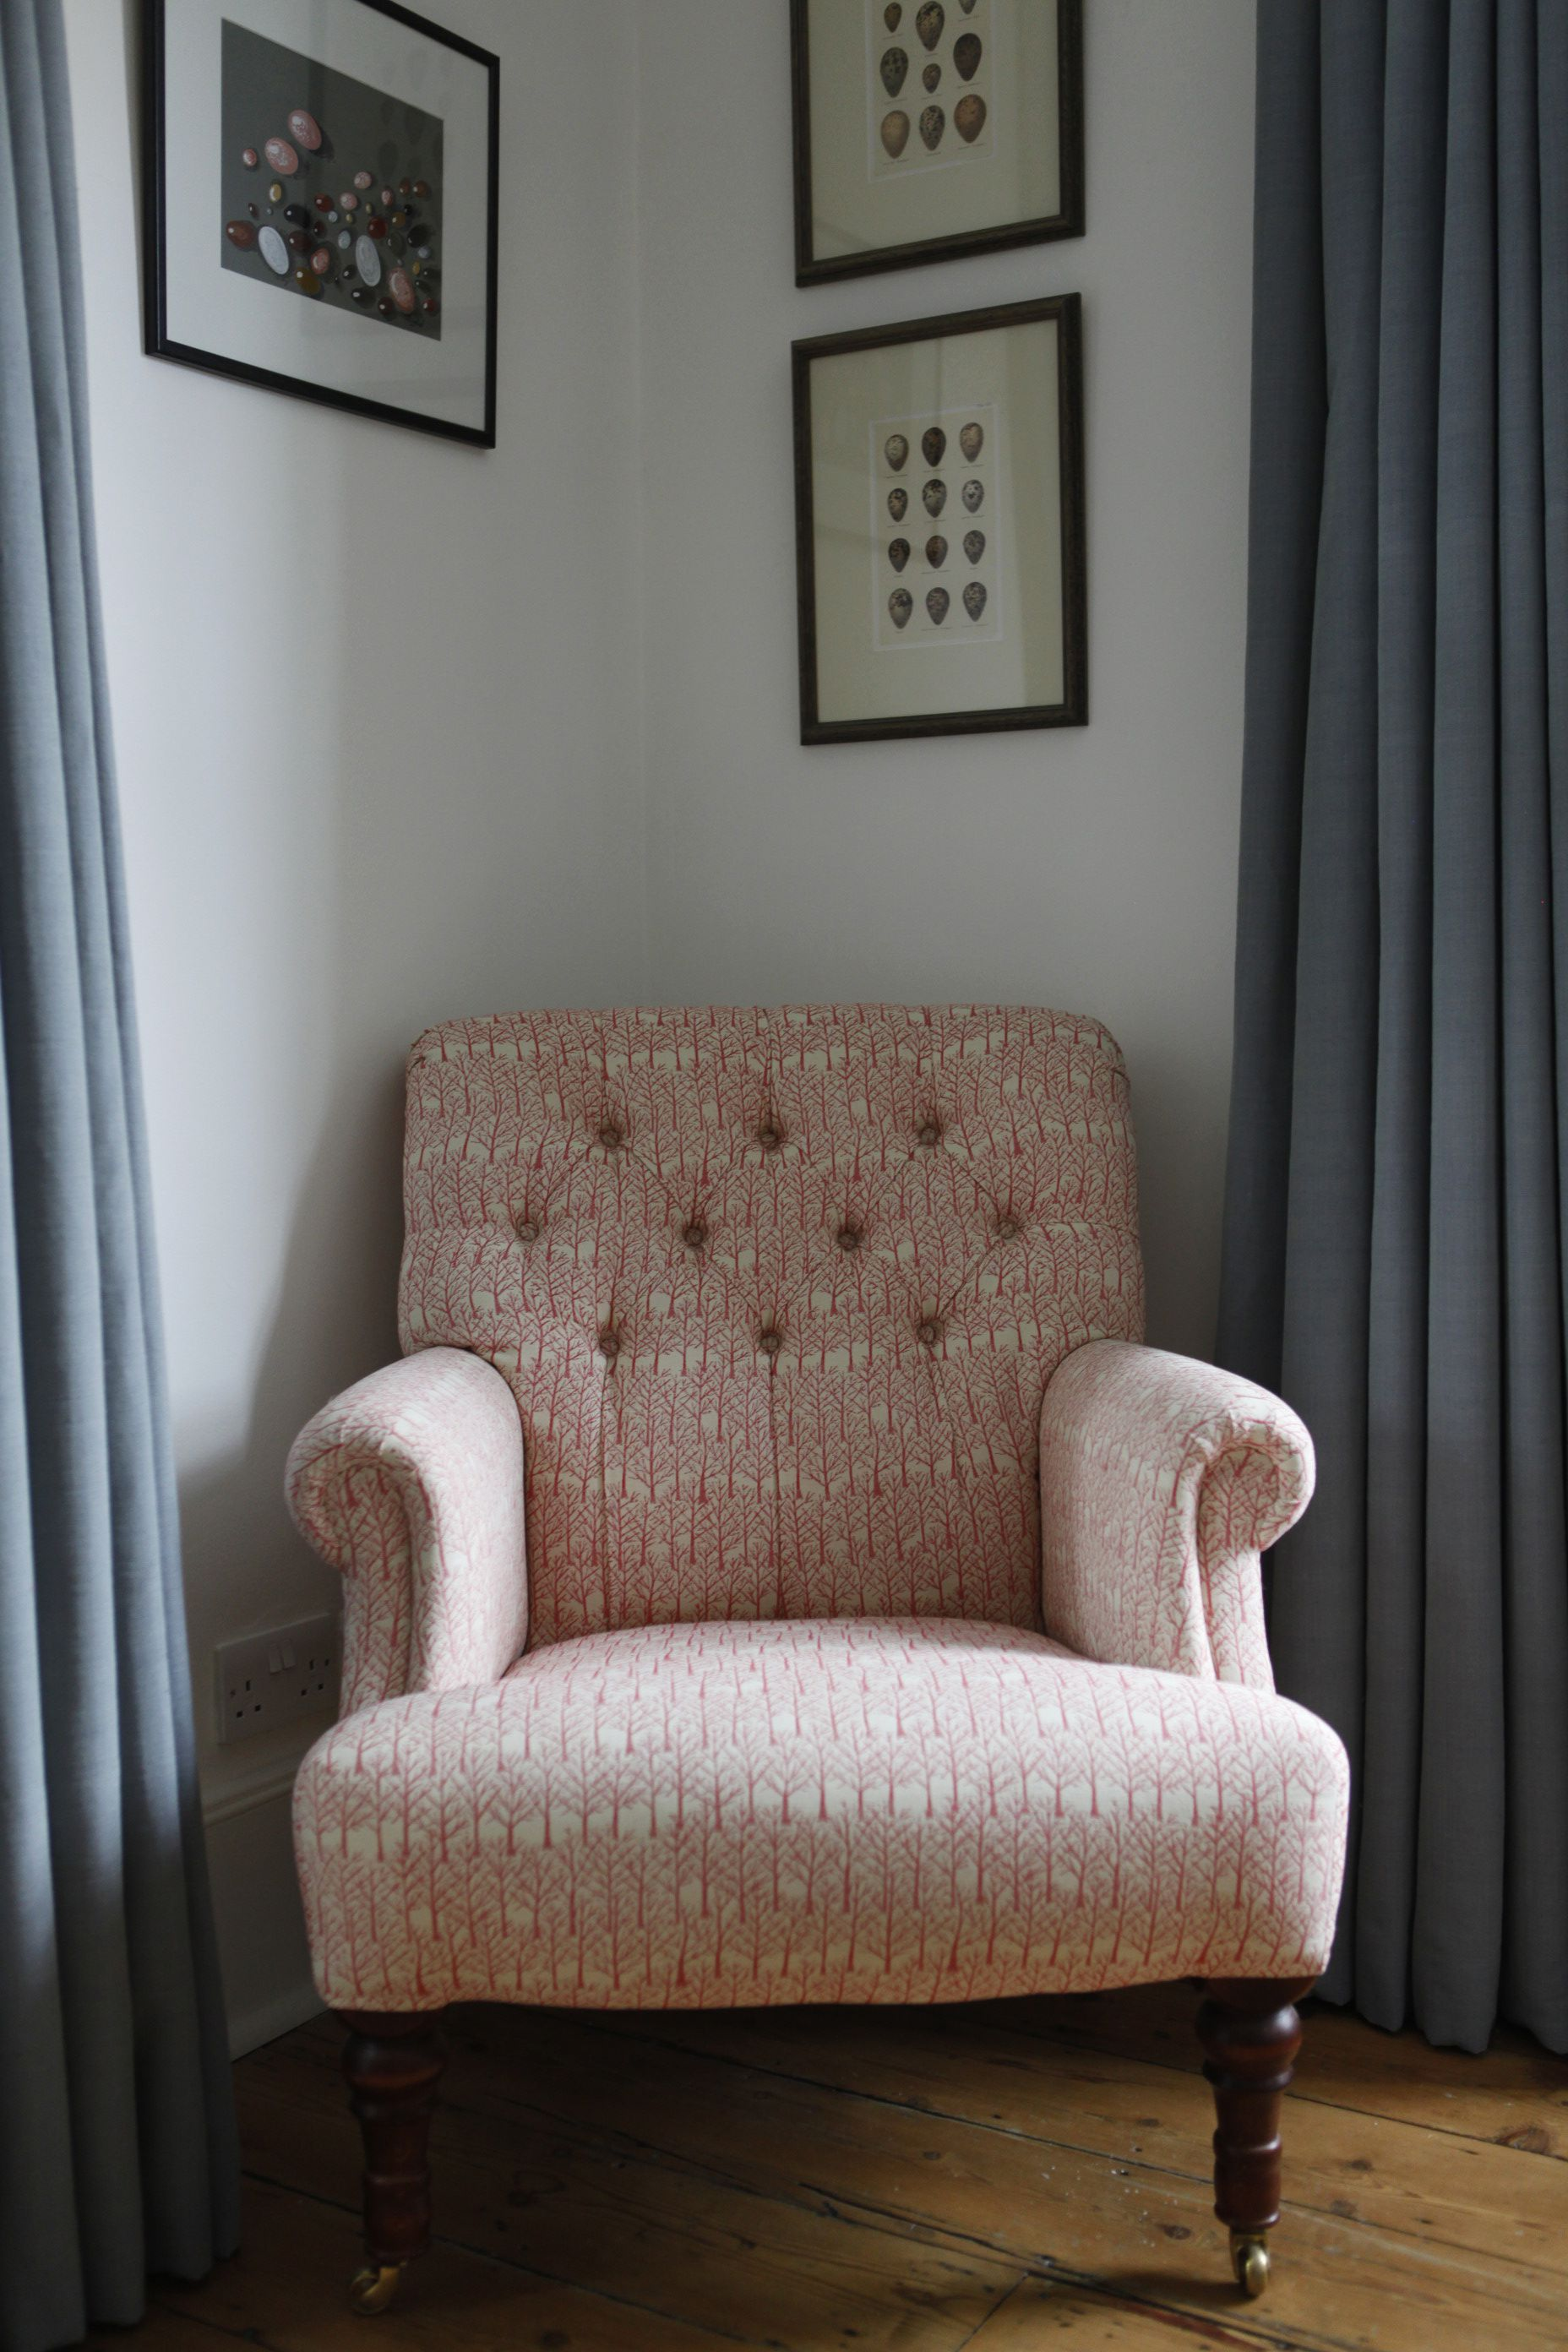 Chair in a coral coloured fabric and cool blue curtains